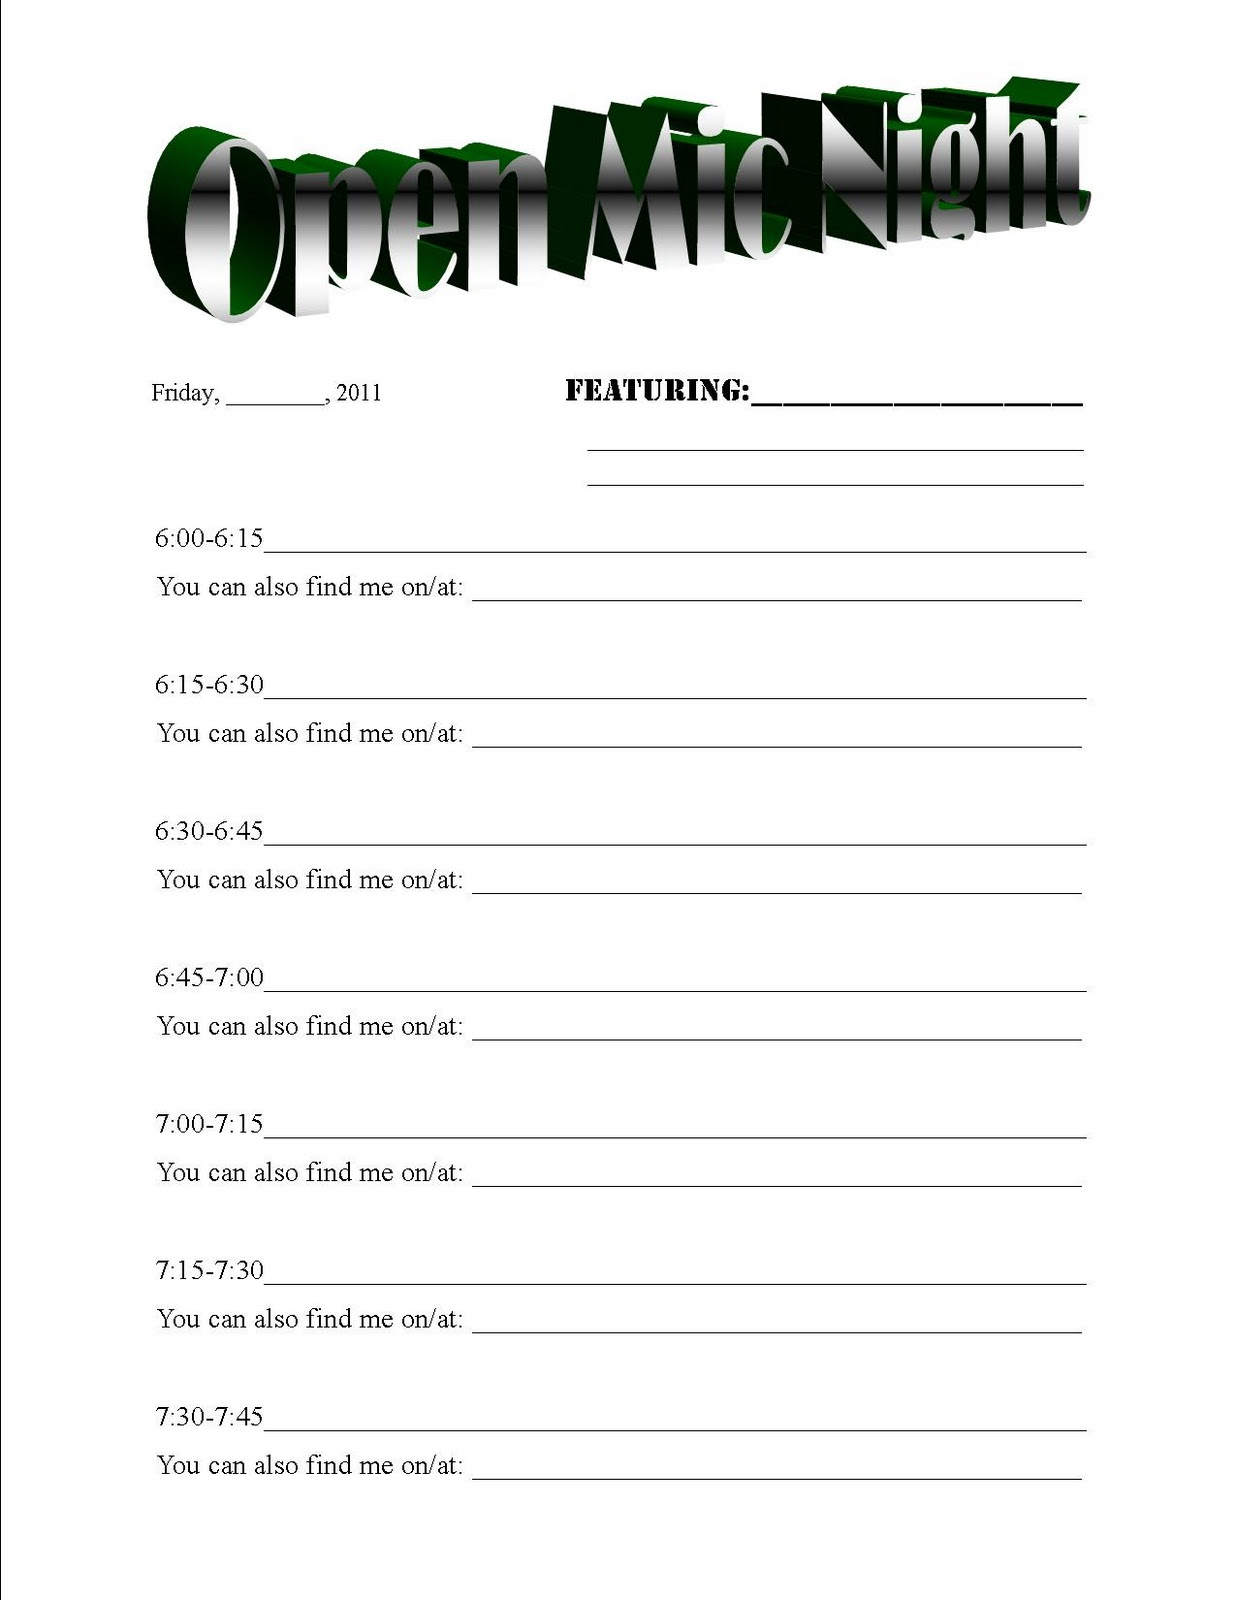 club sign up sheet template fiveoutsiders com